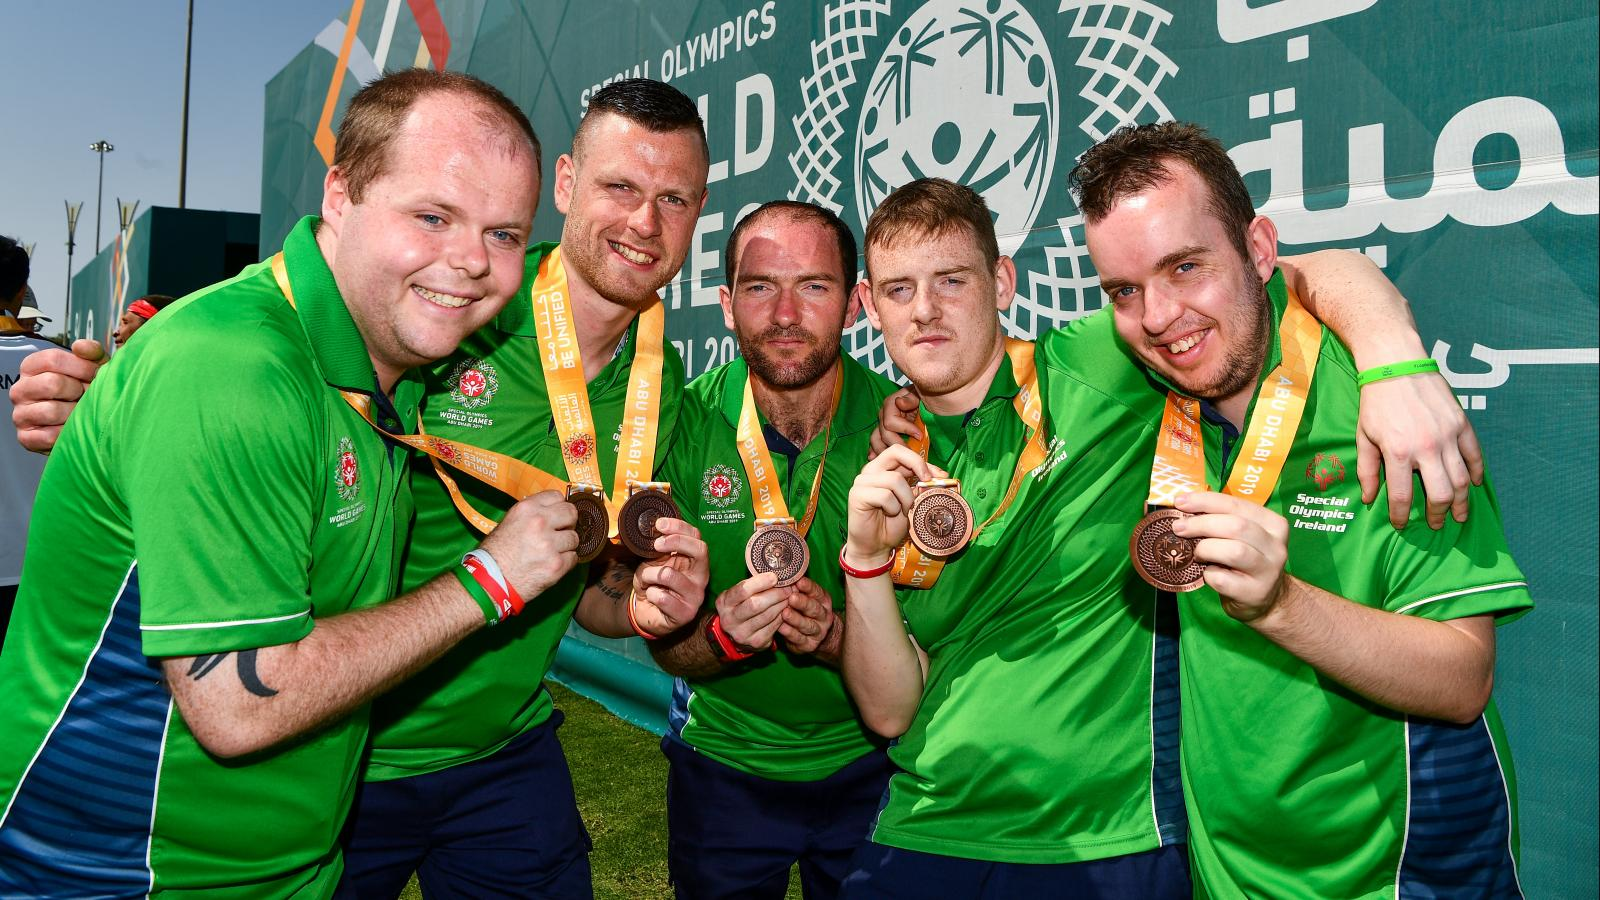 Members of Special Olympics Ireland team holding up medals in celebration